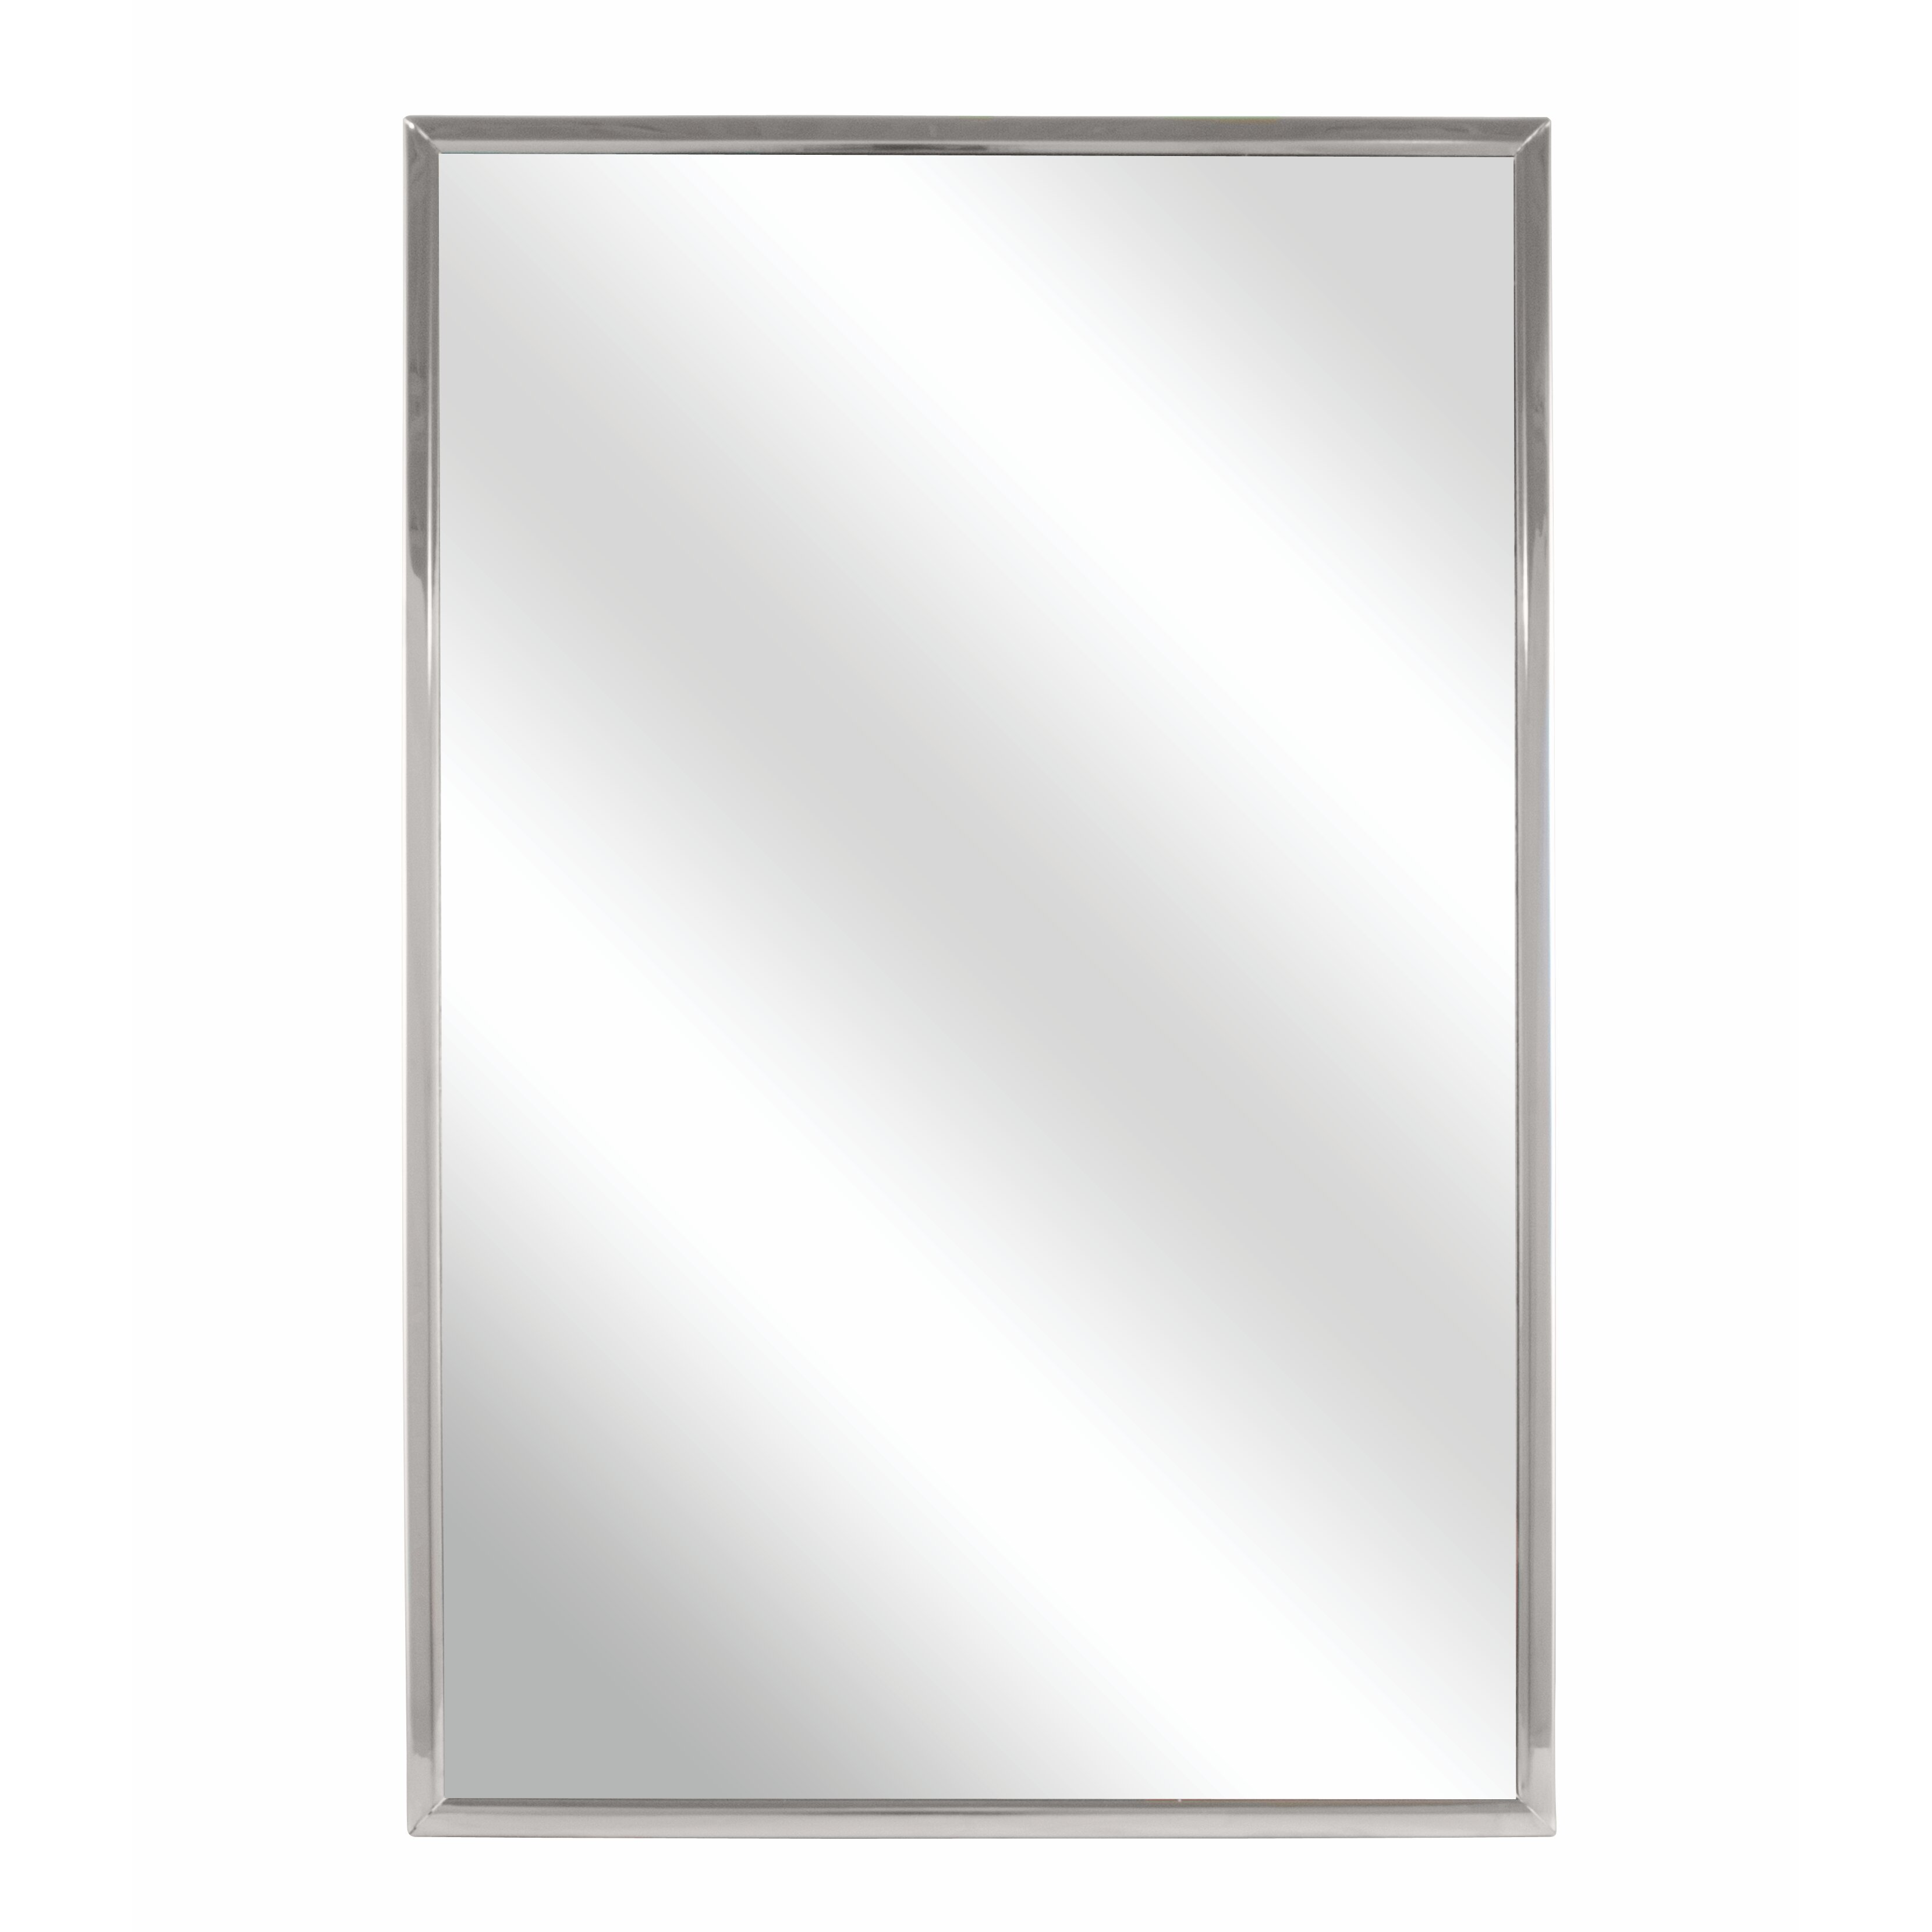 quick view framed wall mirror